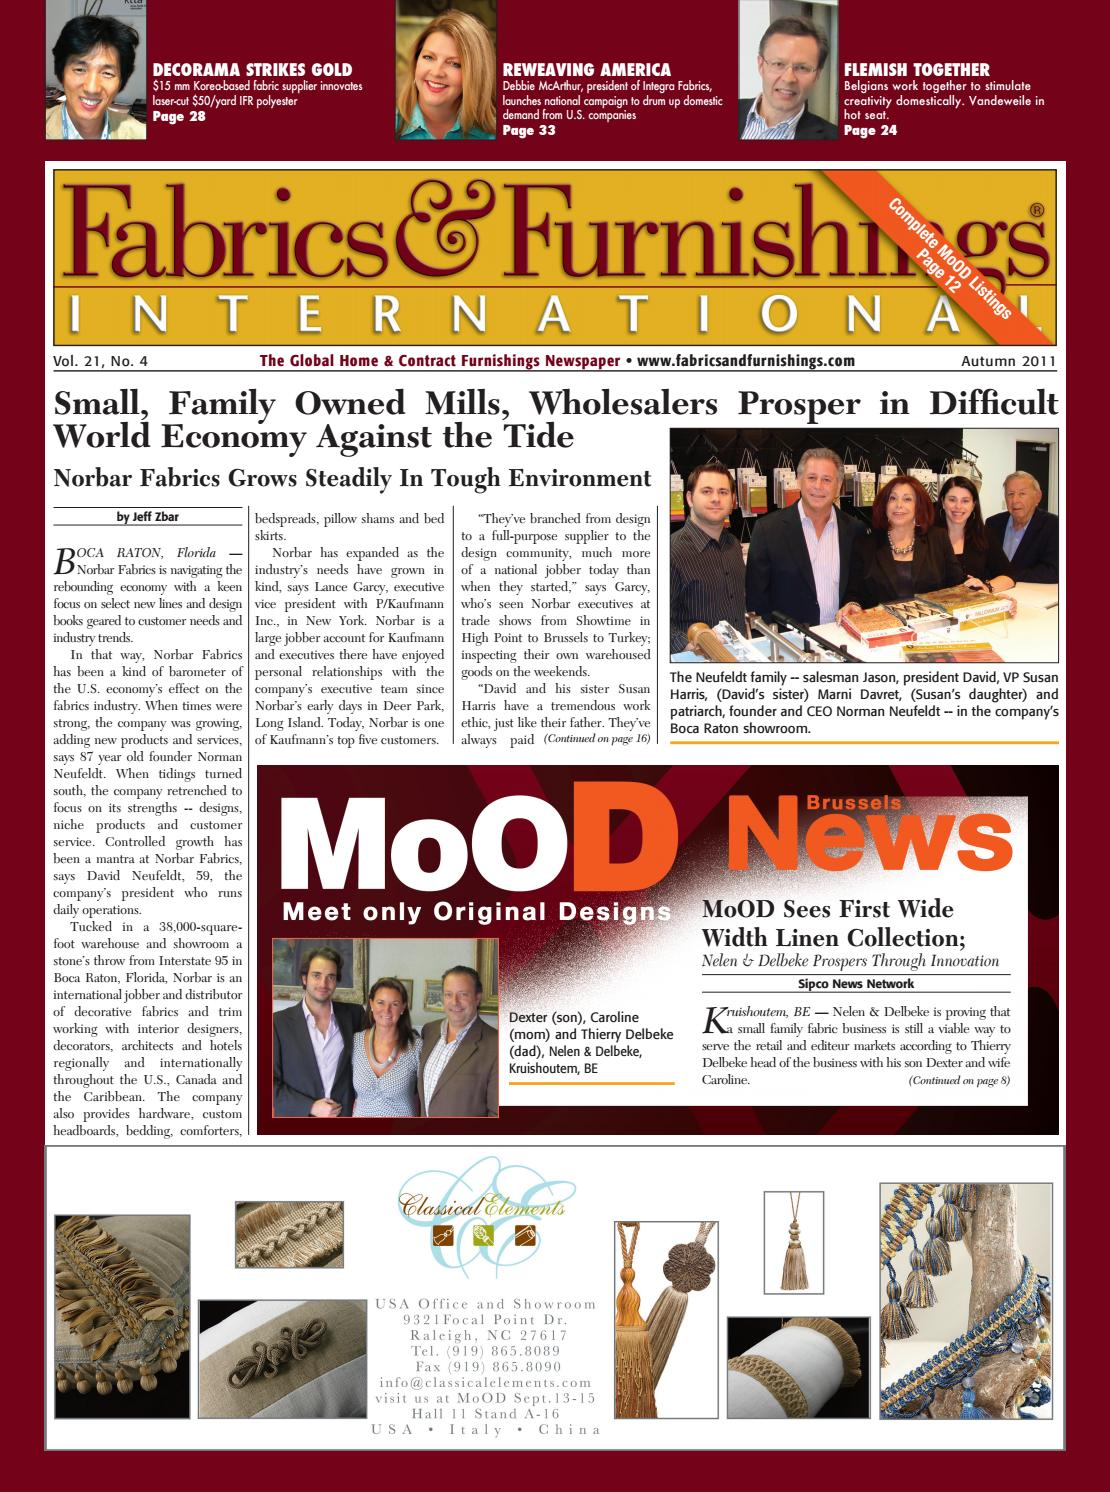 Fabrics & Furnishings - Autumn 2011 Issue by Fabrics & Furnishings